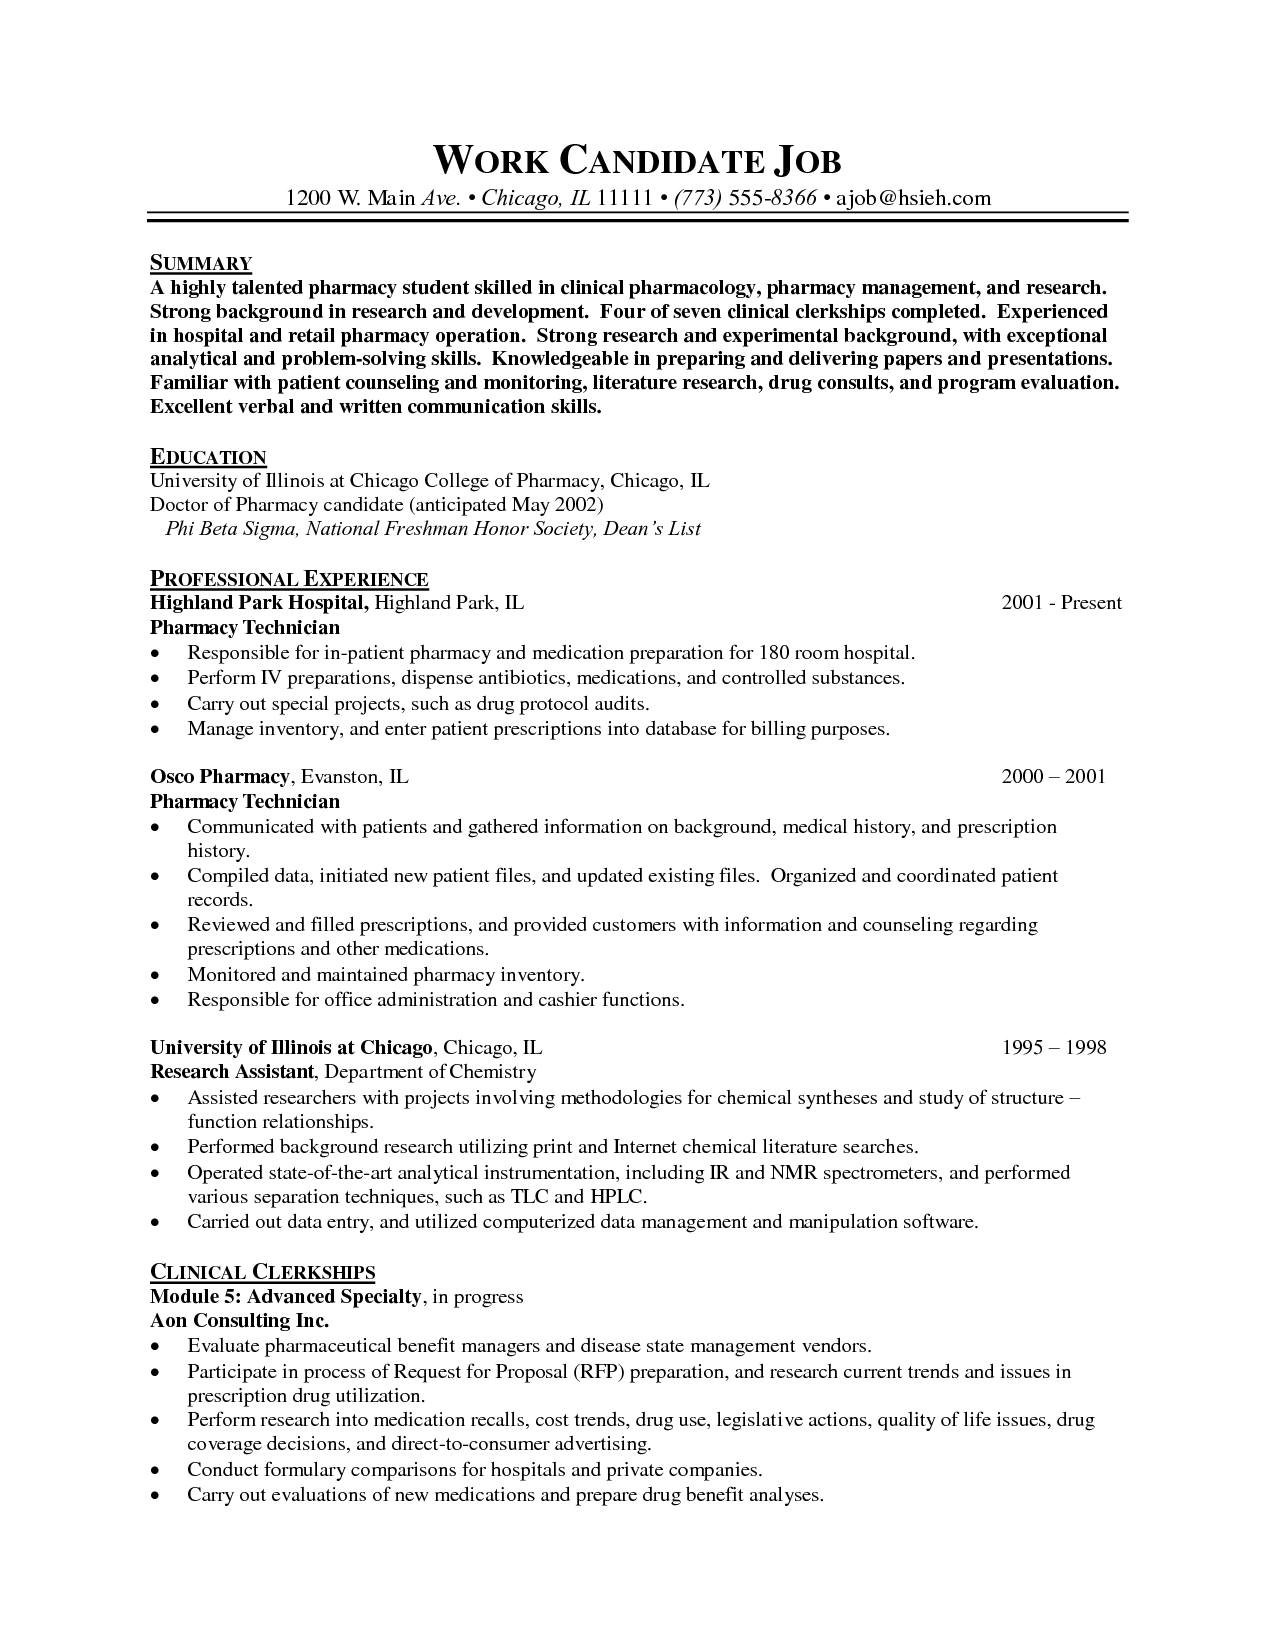 Exceptional Professional Resume Cover Letter Sample | Get Instant, Risk Free, Access To  The Full. Pharmacy TechnicianCover ... Idea Pharmacy Tech Resume Samples